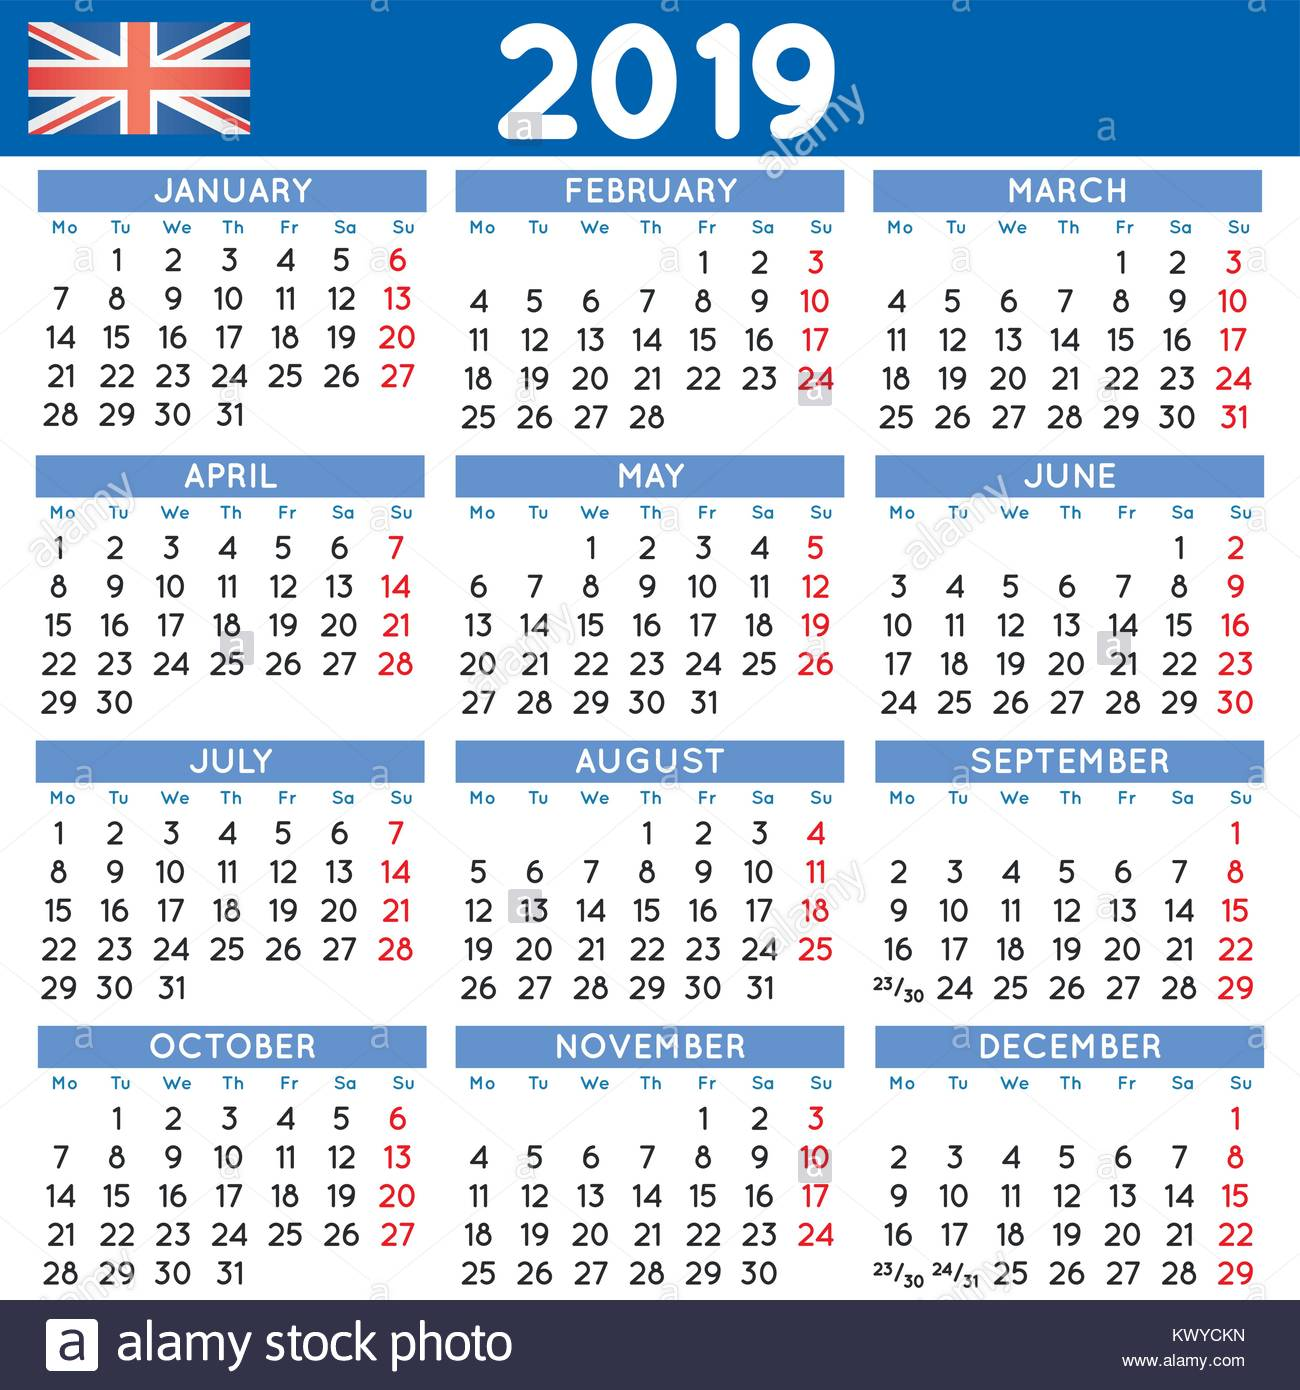 Calendrier 2019 En Semaine.2019 Calendrier Carre Elegant English Uk Annee 2019